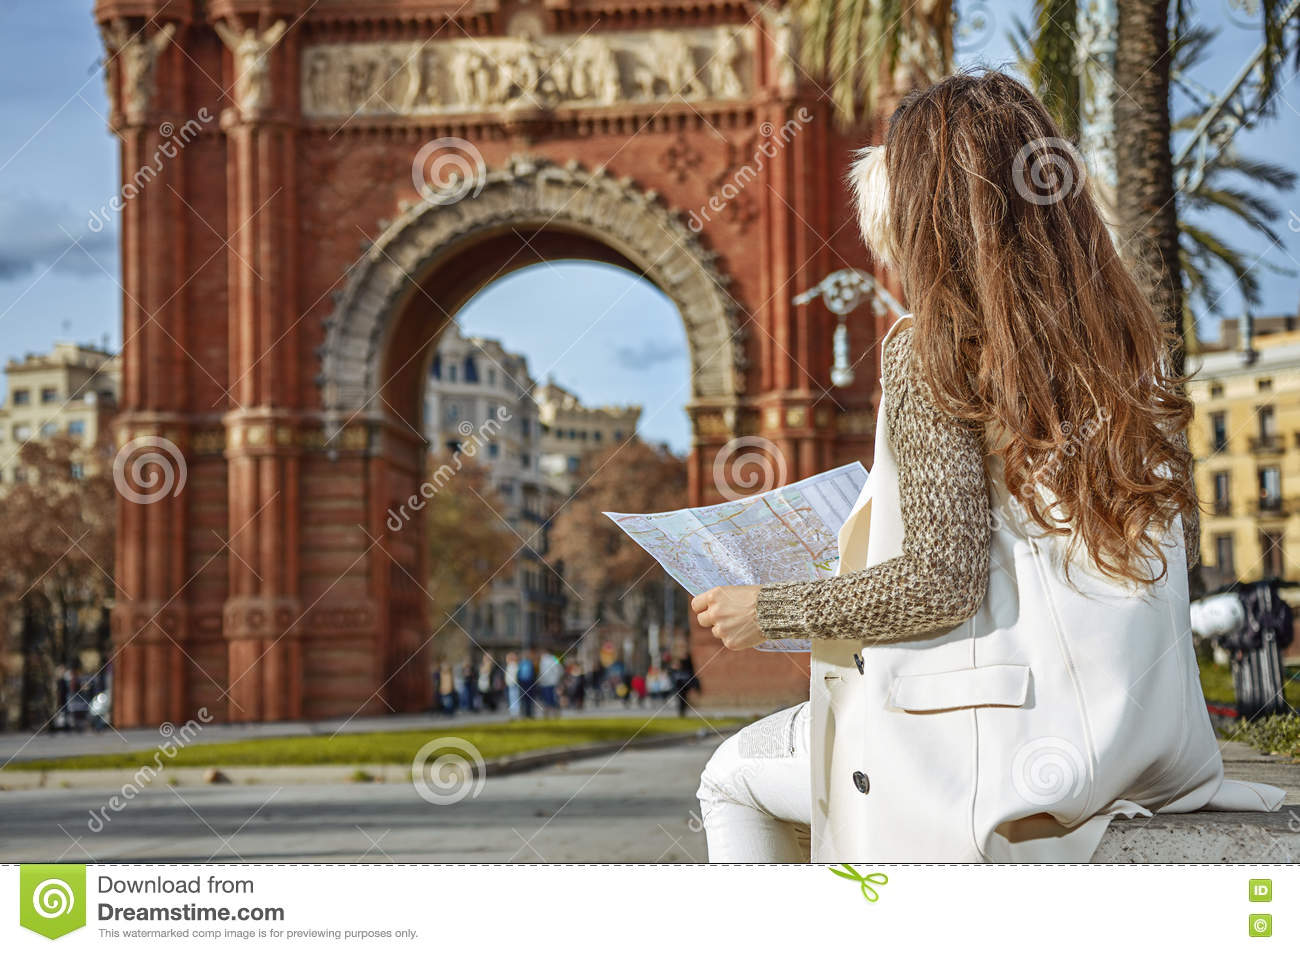 Map Of Spain Near Barcelona.Woman Near Arc De Triomf In Barcelona Spain Looking At Map Stock